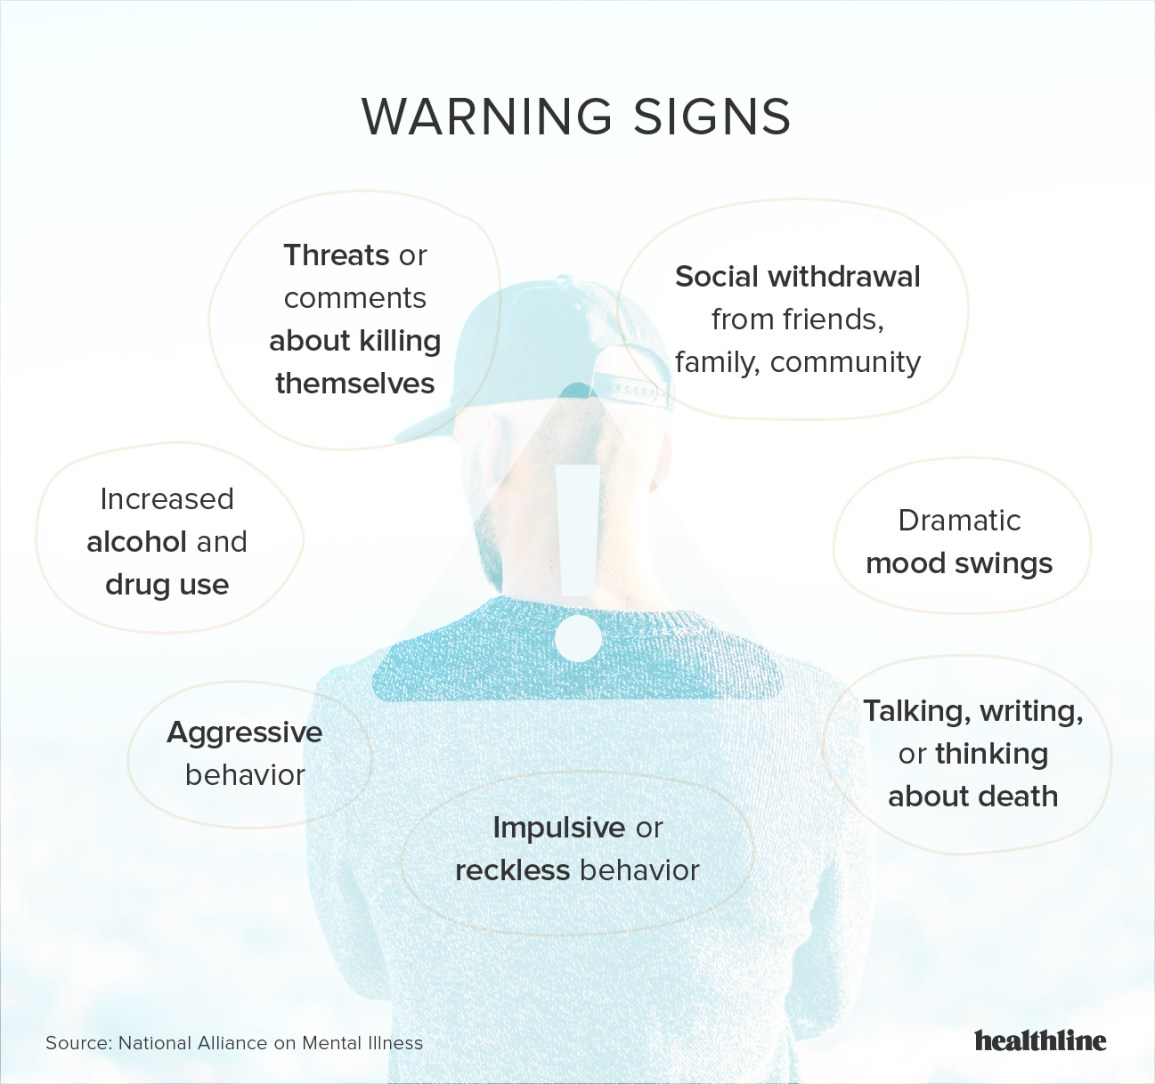 Suicide: Suicidal Signs, Behavior, Risk Factors, How to Talk